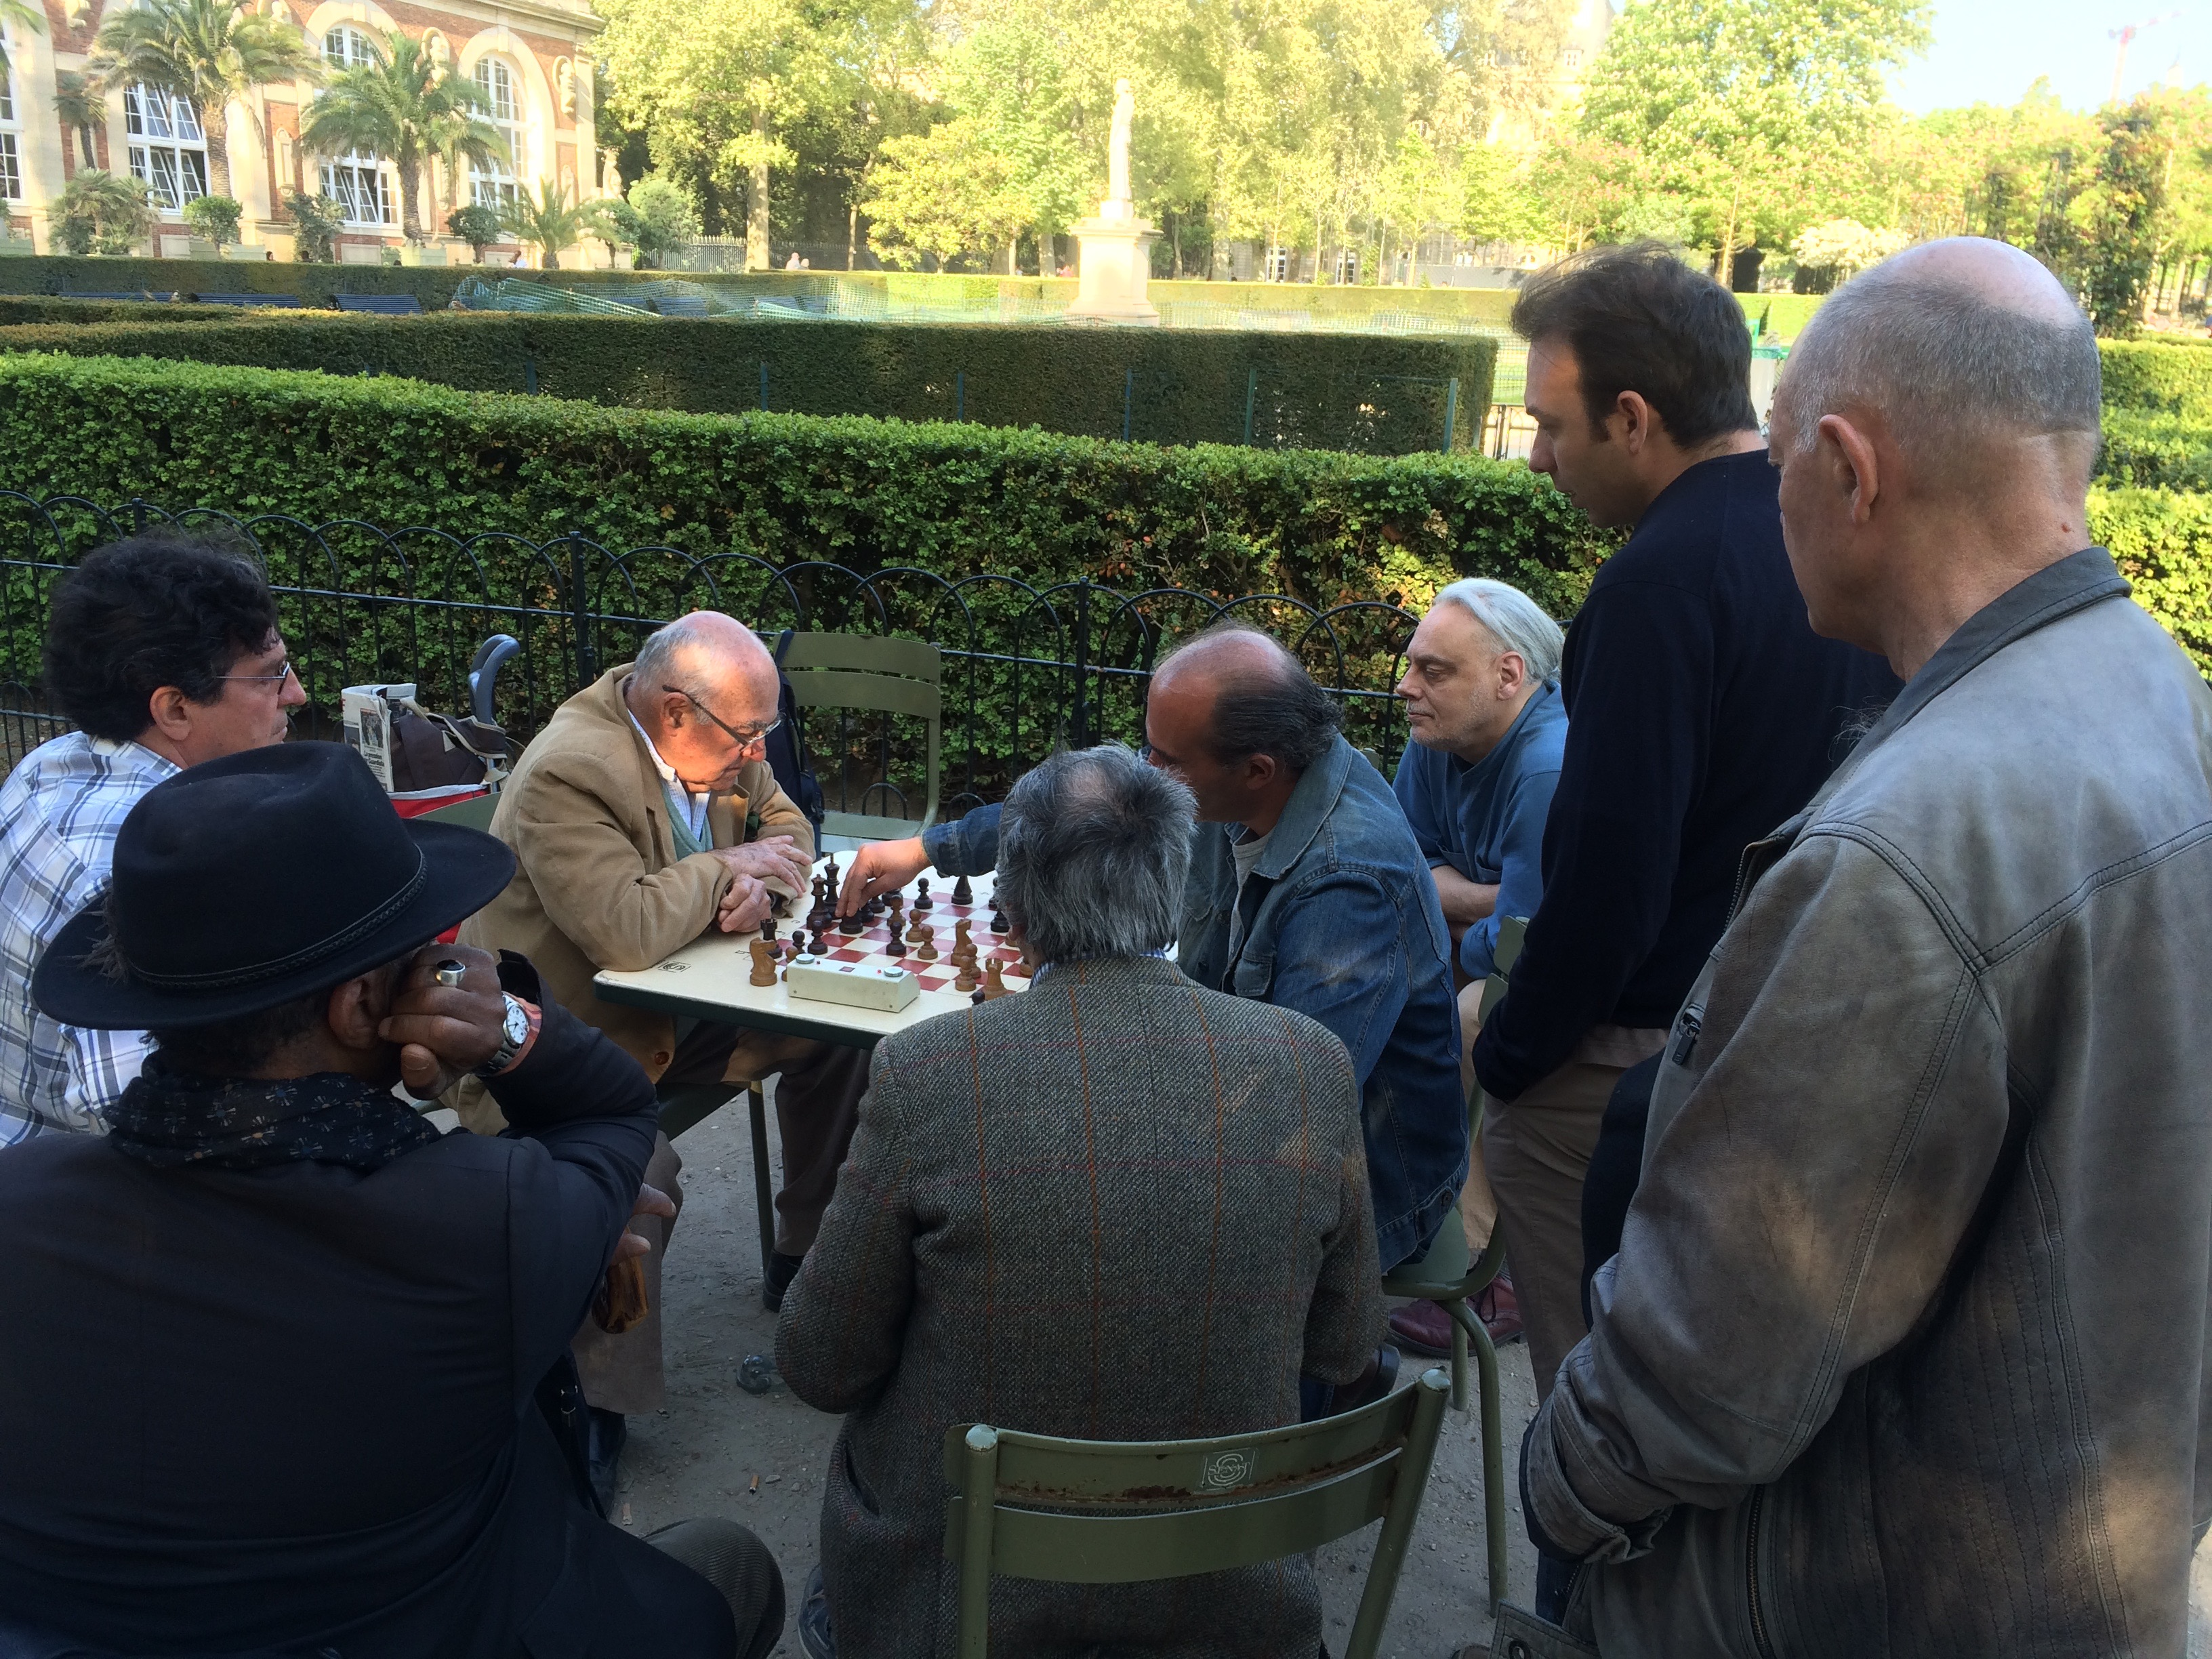 Parisian chess game in the Jardin du Luxembourg